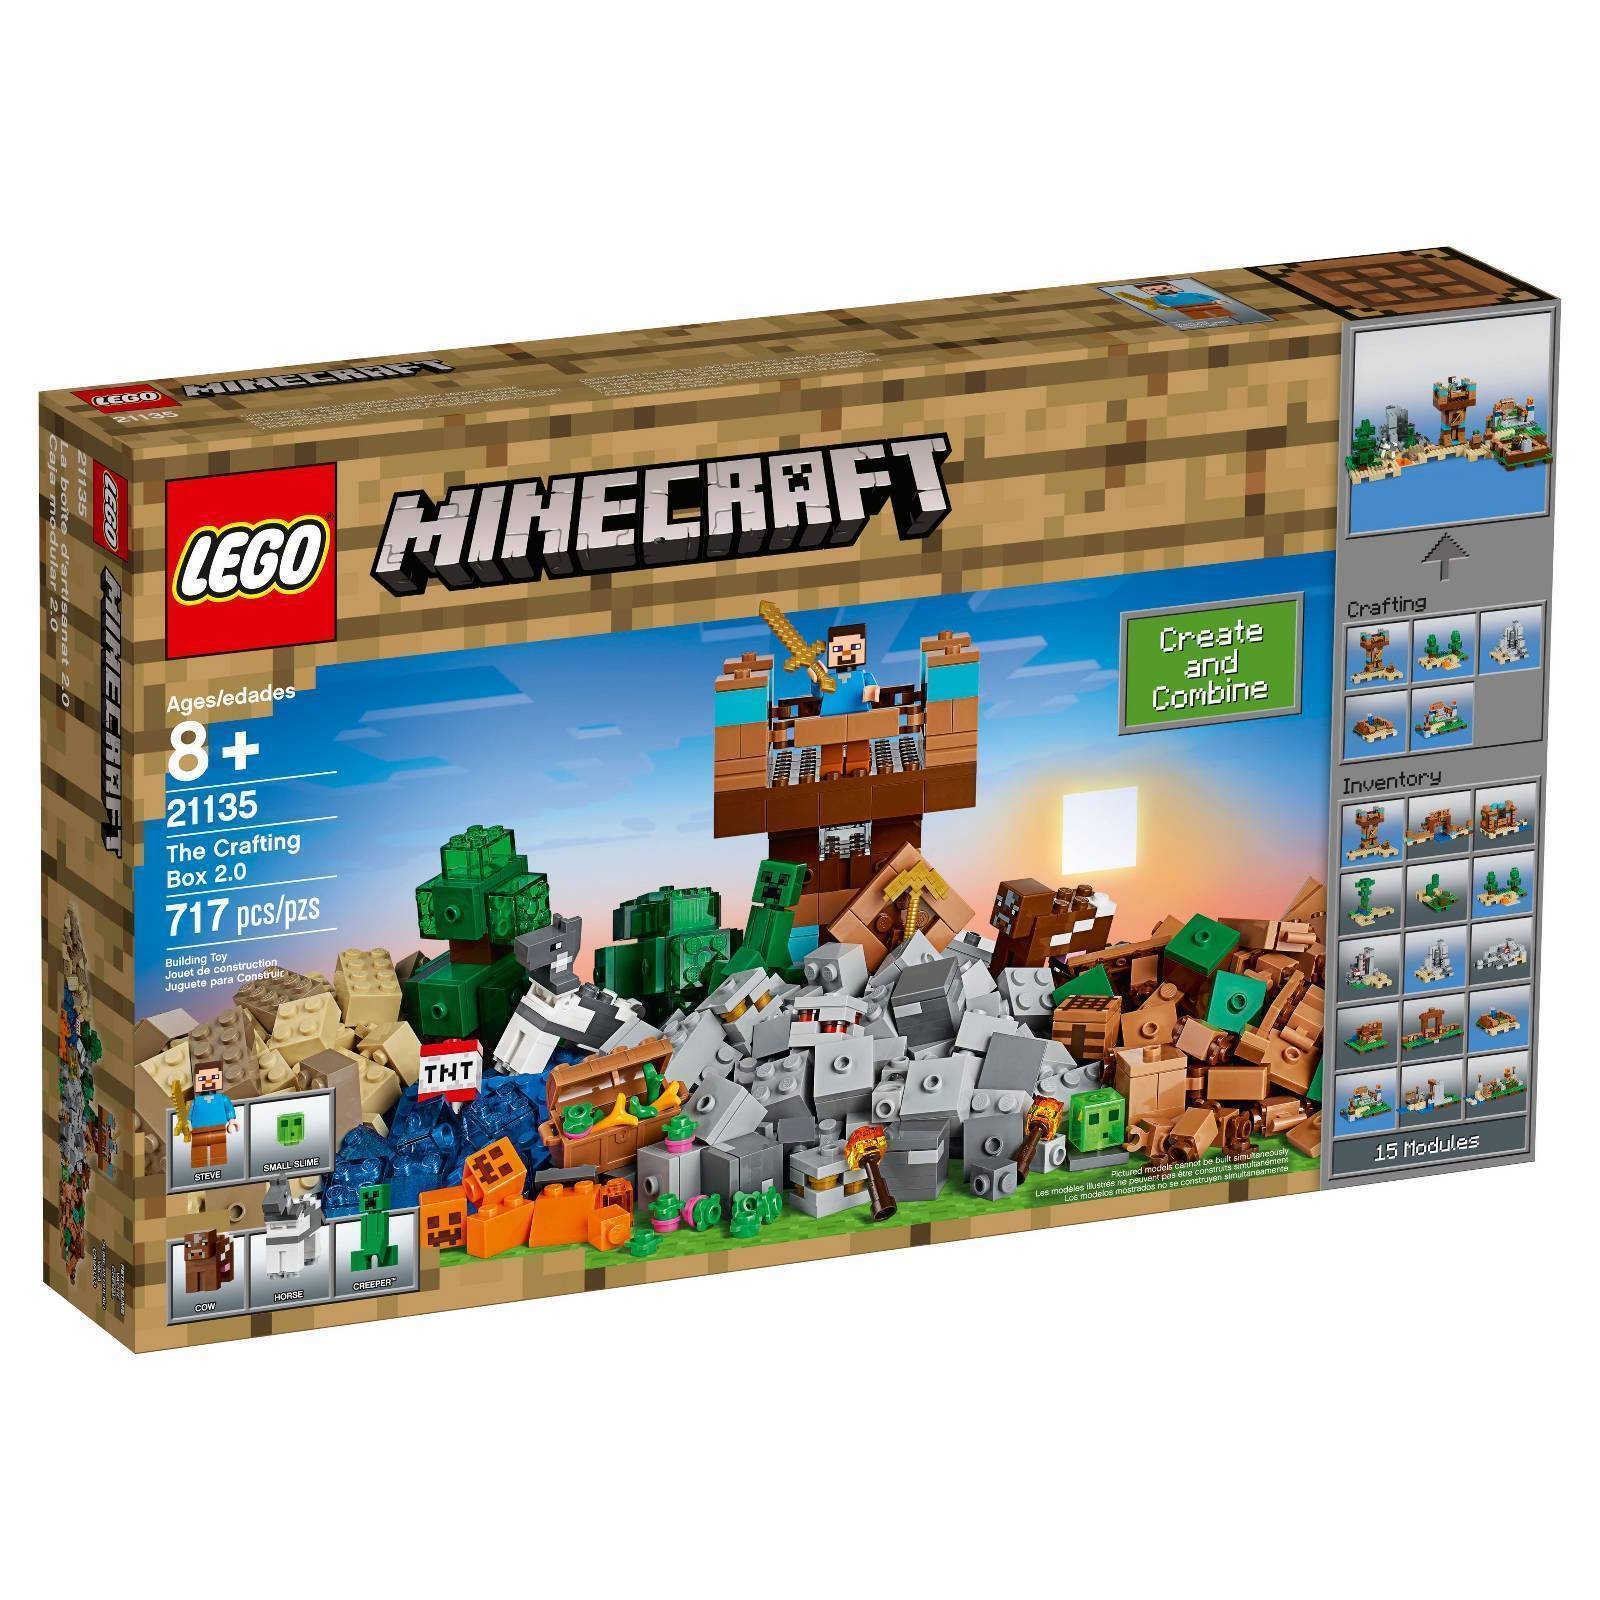 21135 THE CRAFTING BOX 2.0 minecraft lego legos set NEW steve HORSE cow SLIME